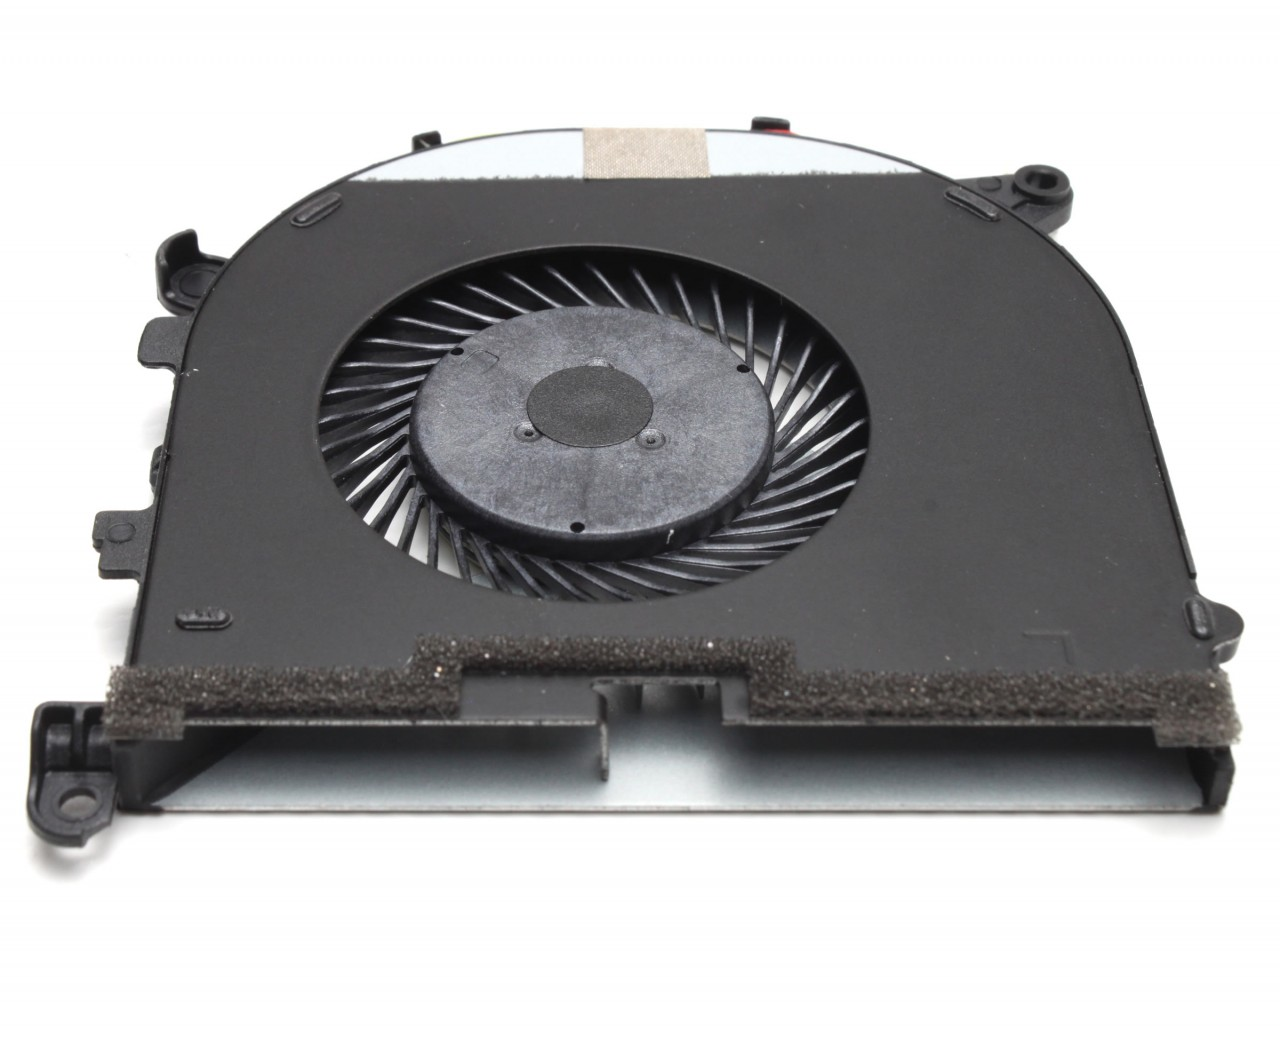 Cooler laptop Dell Precision M3800 Stanga imagine powerlaptop.ro 2021